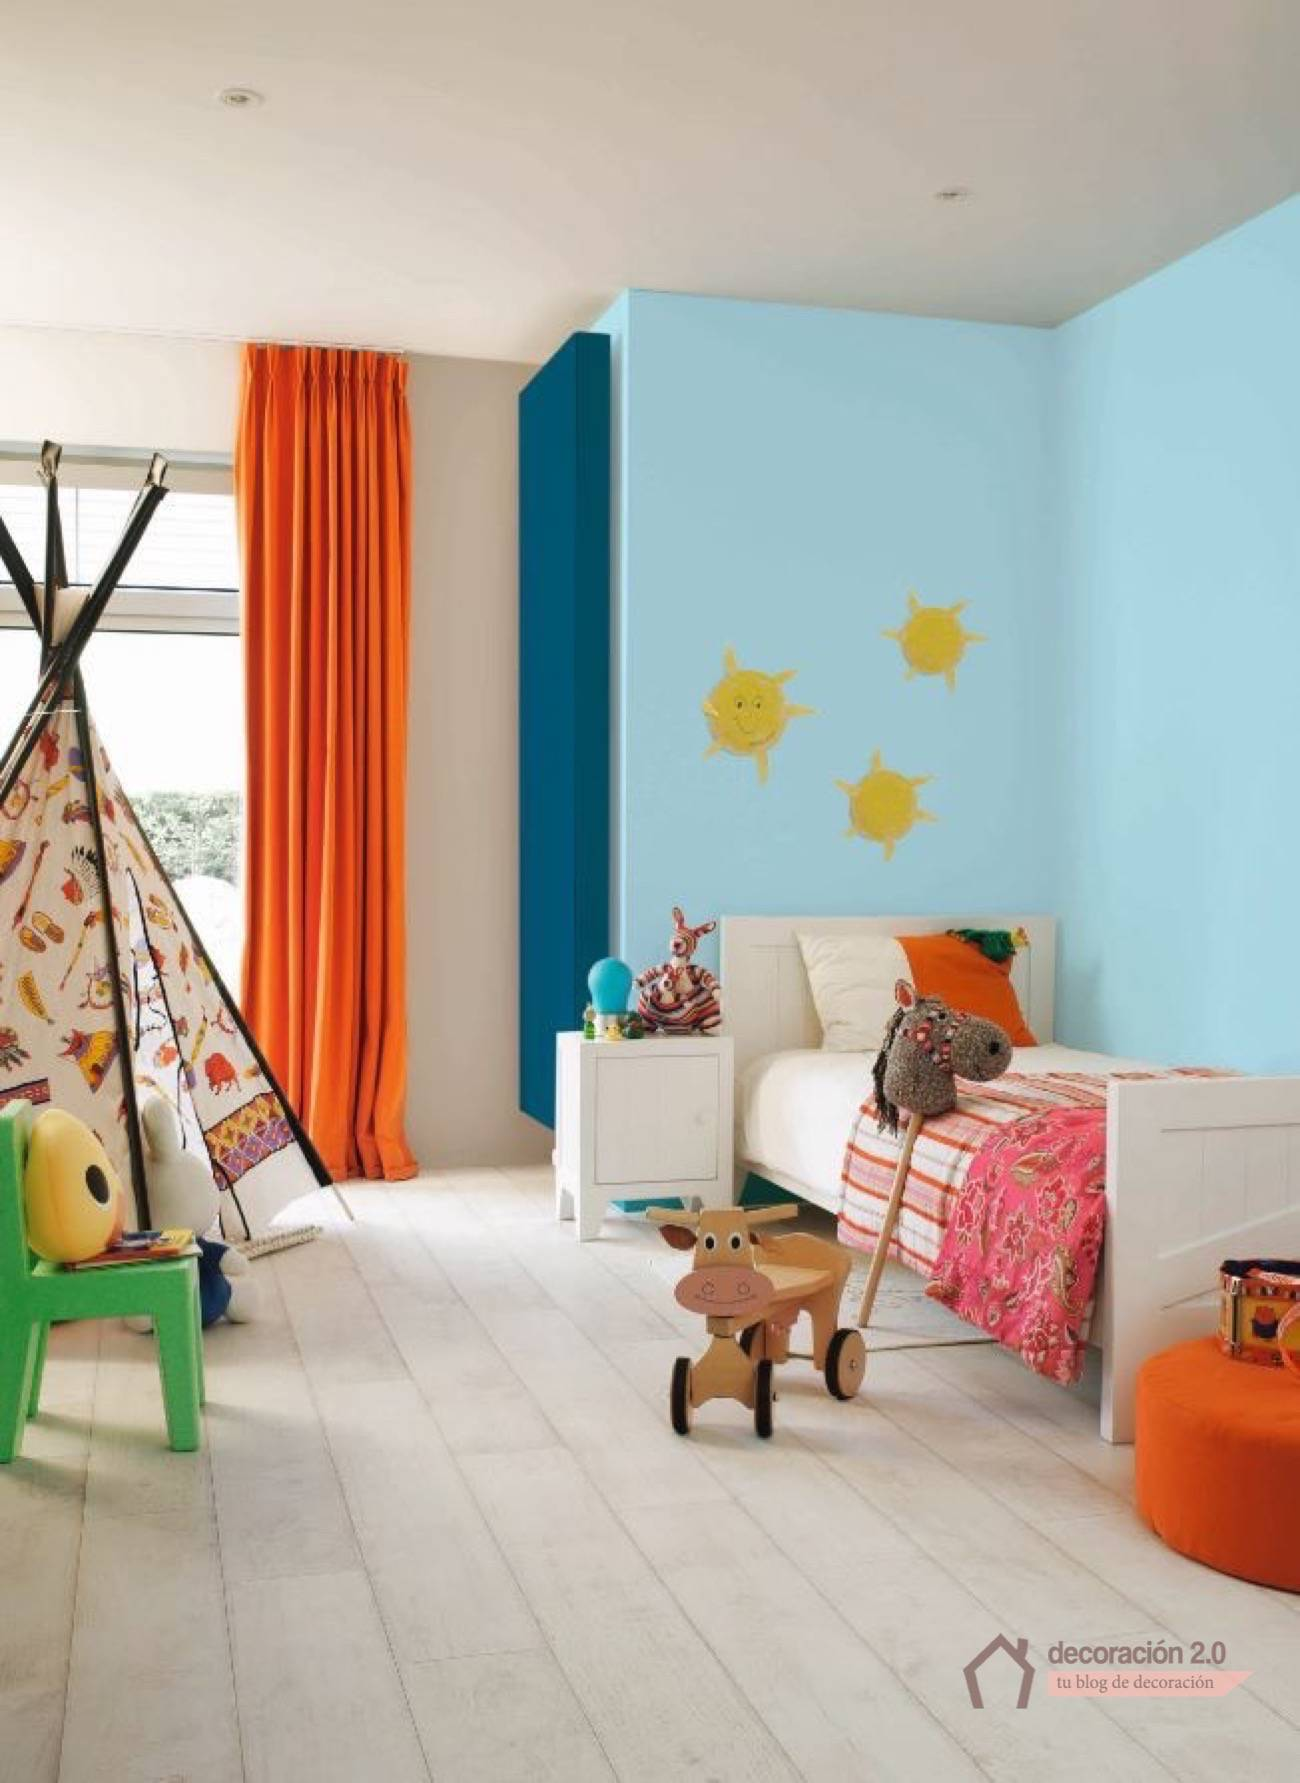 5 ideas diy para decorar nuestras habitaciones infantiles for Pared habitacion infantil